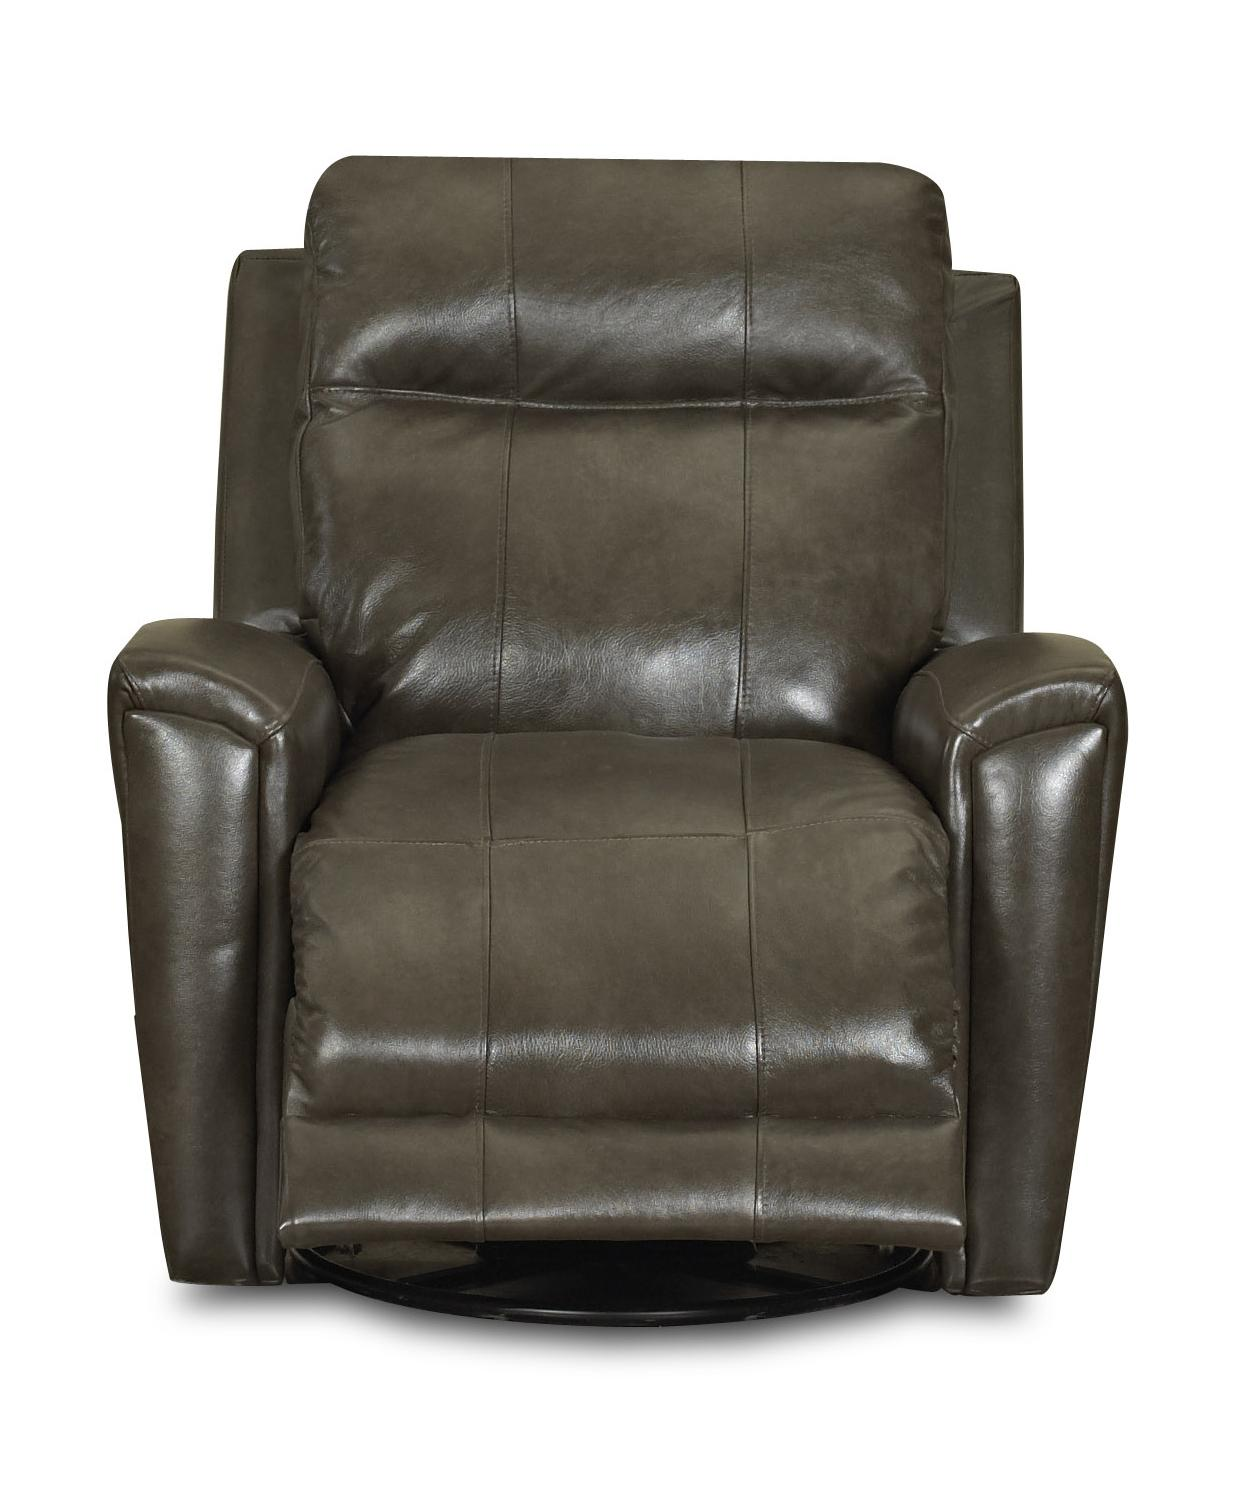 Rocking Swivel Chair Transitional Swivel Rocking Reclining Chair By Klaussner